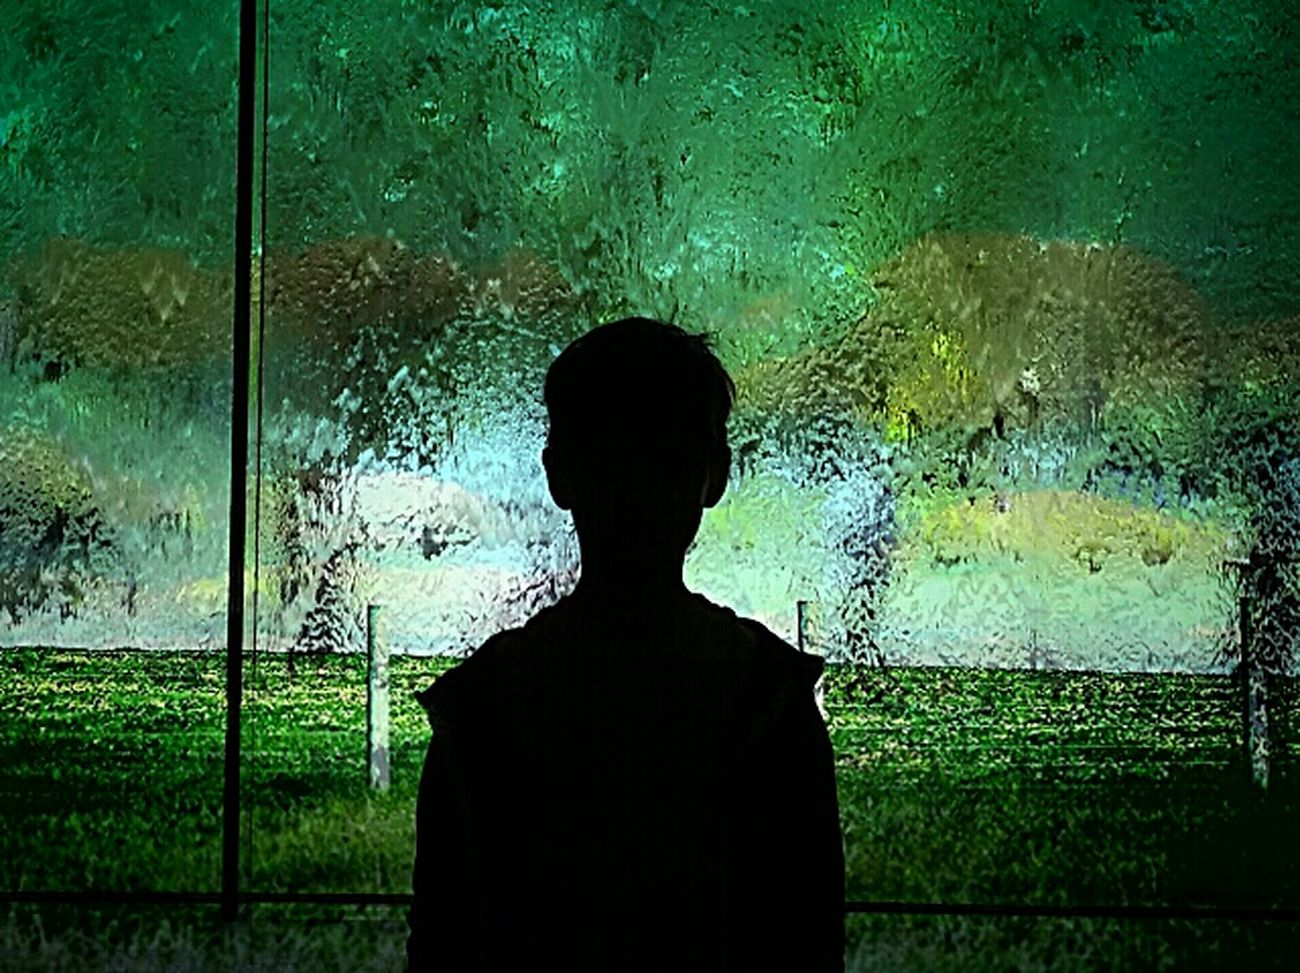 Ngvmelbourne Melbourne Teal Silhouette My Son Melbourne Rocks Photography Superimpose